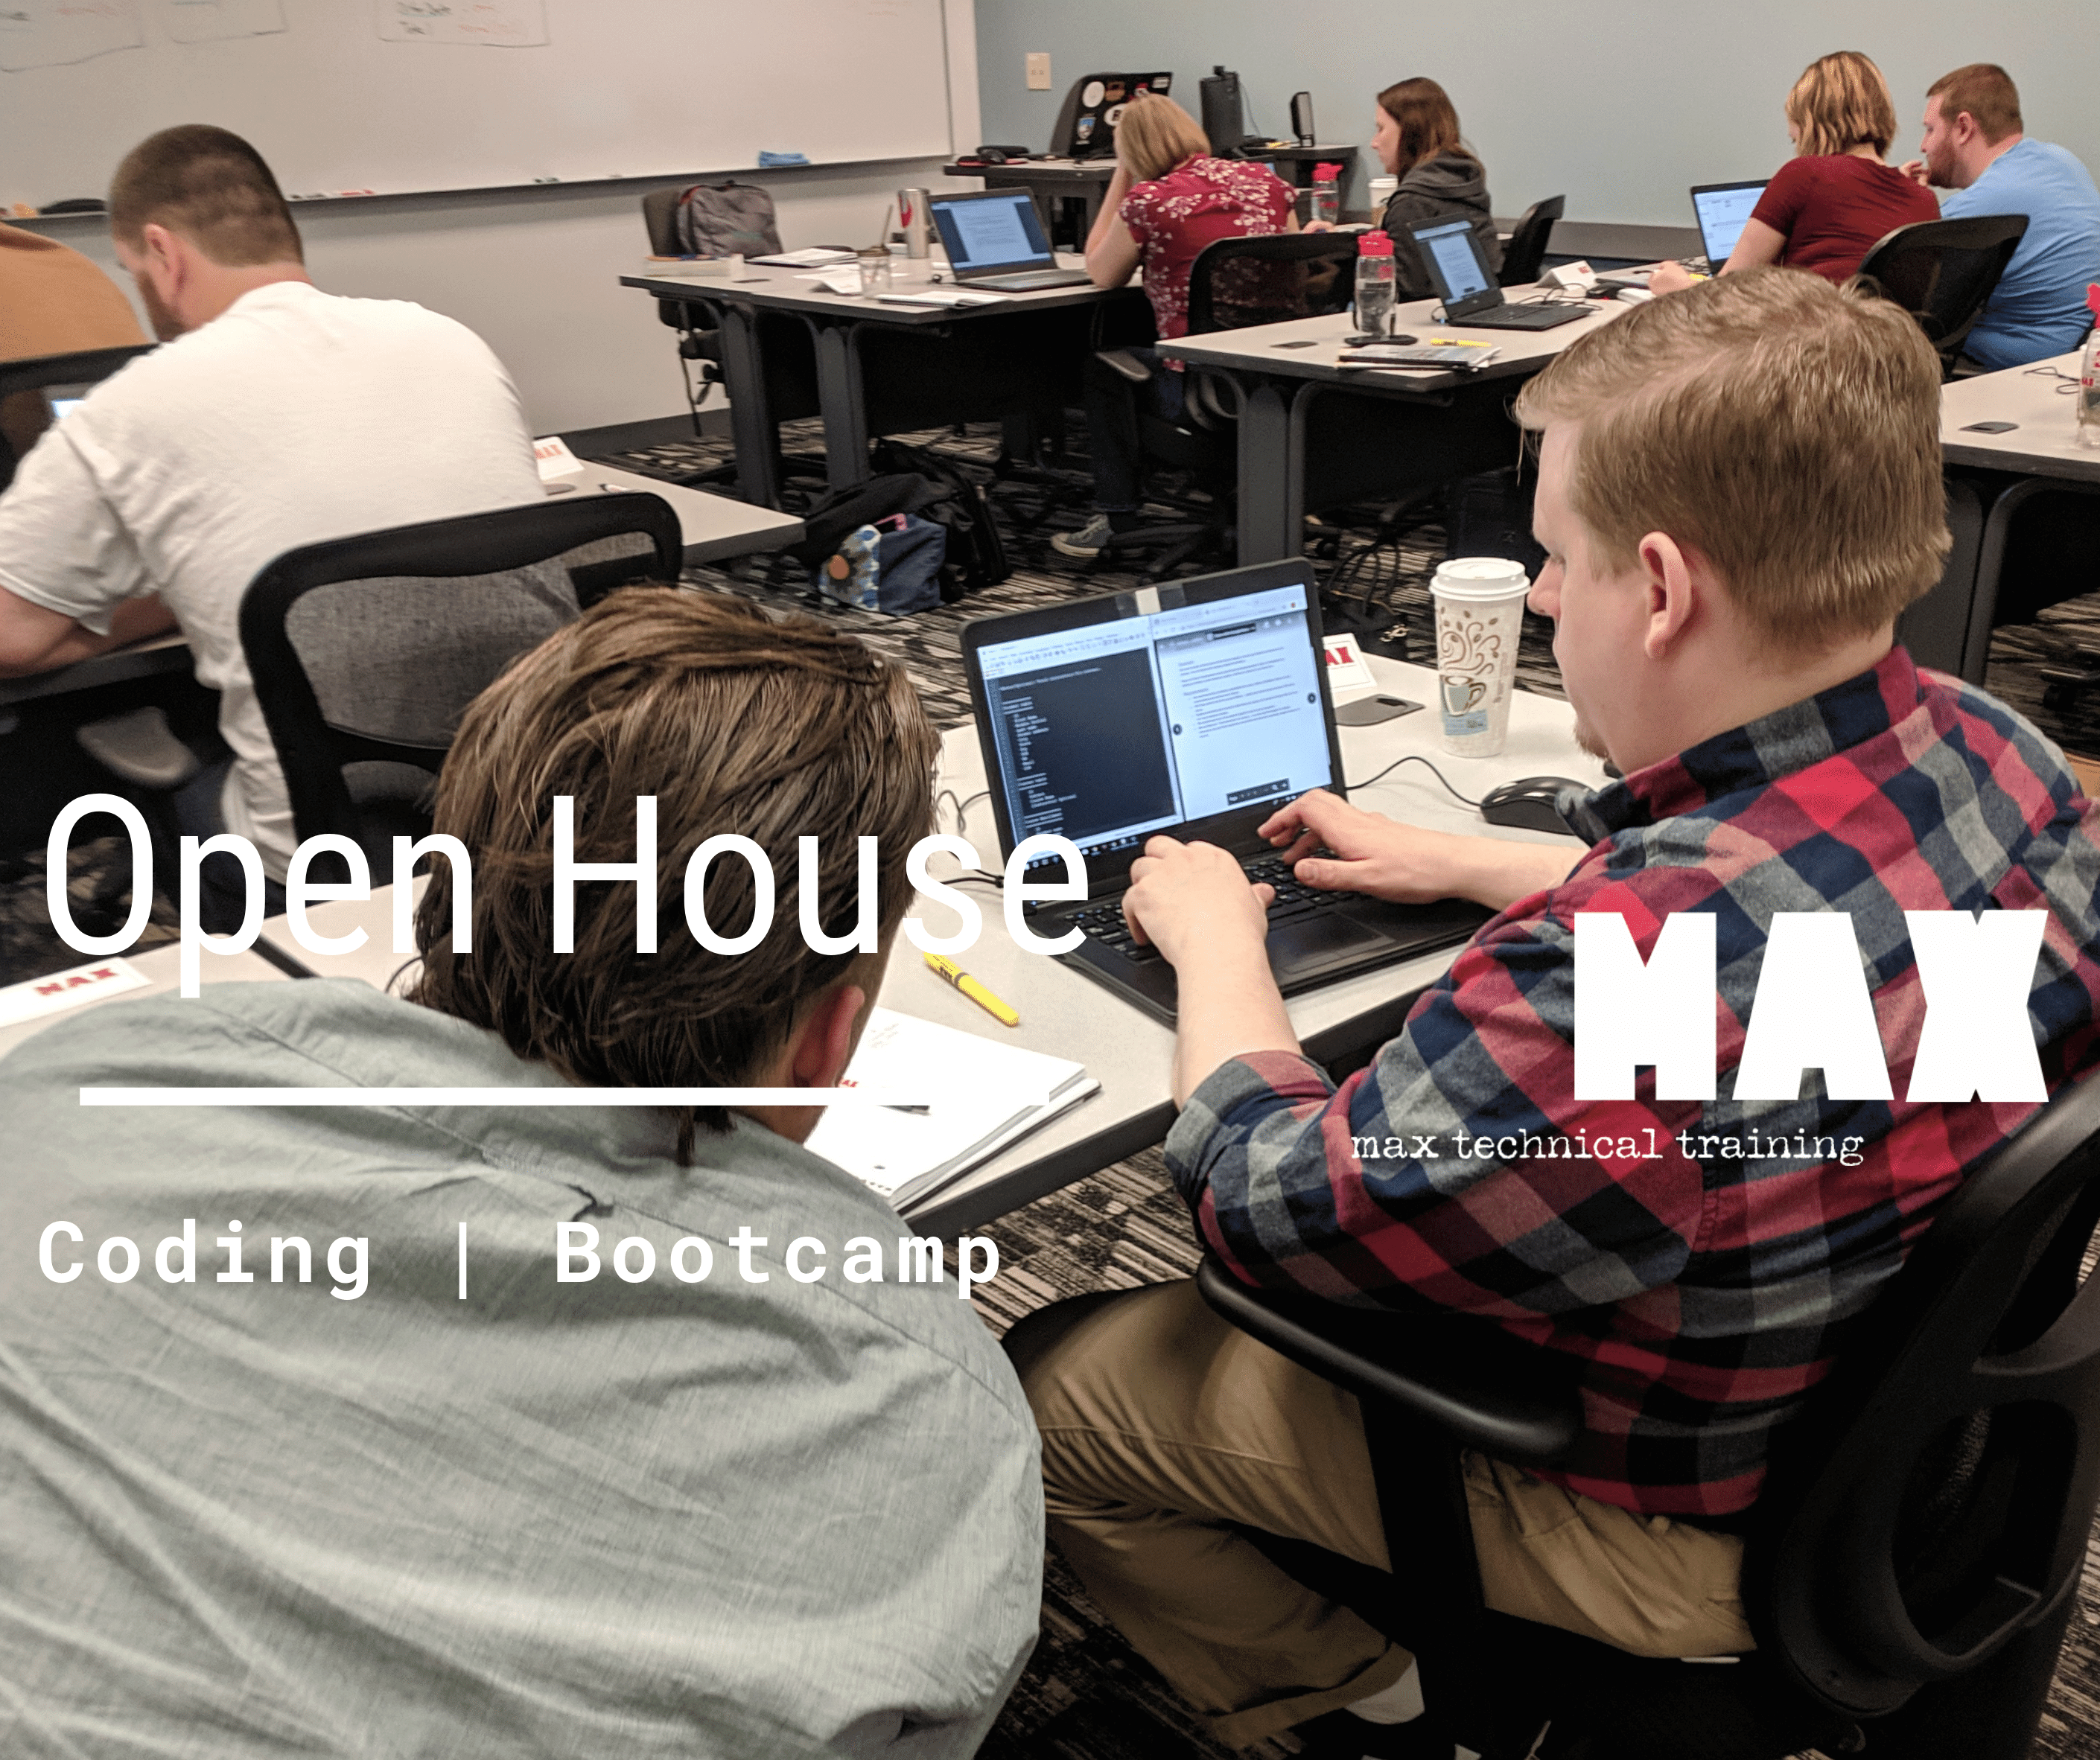 Open House FB _MAX technical training